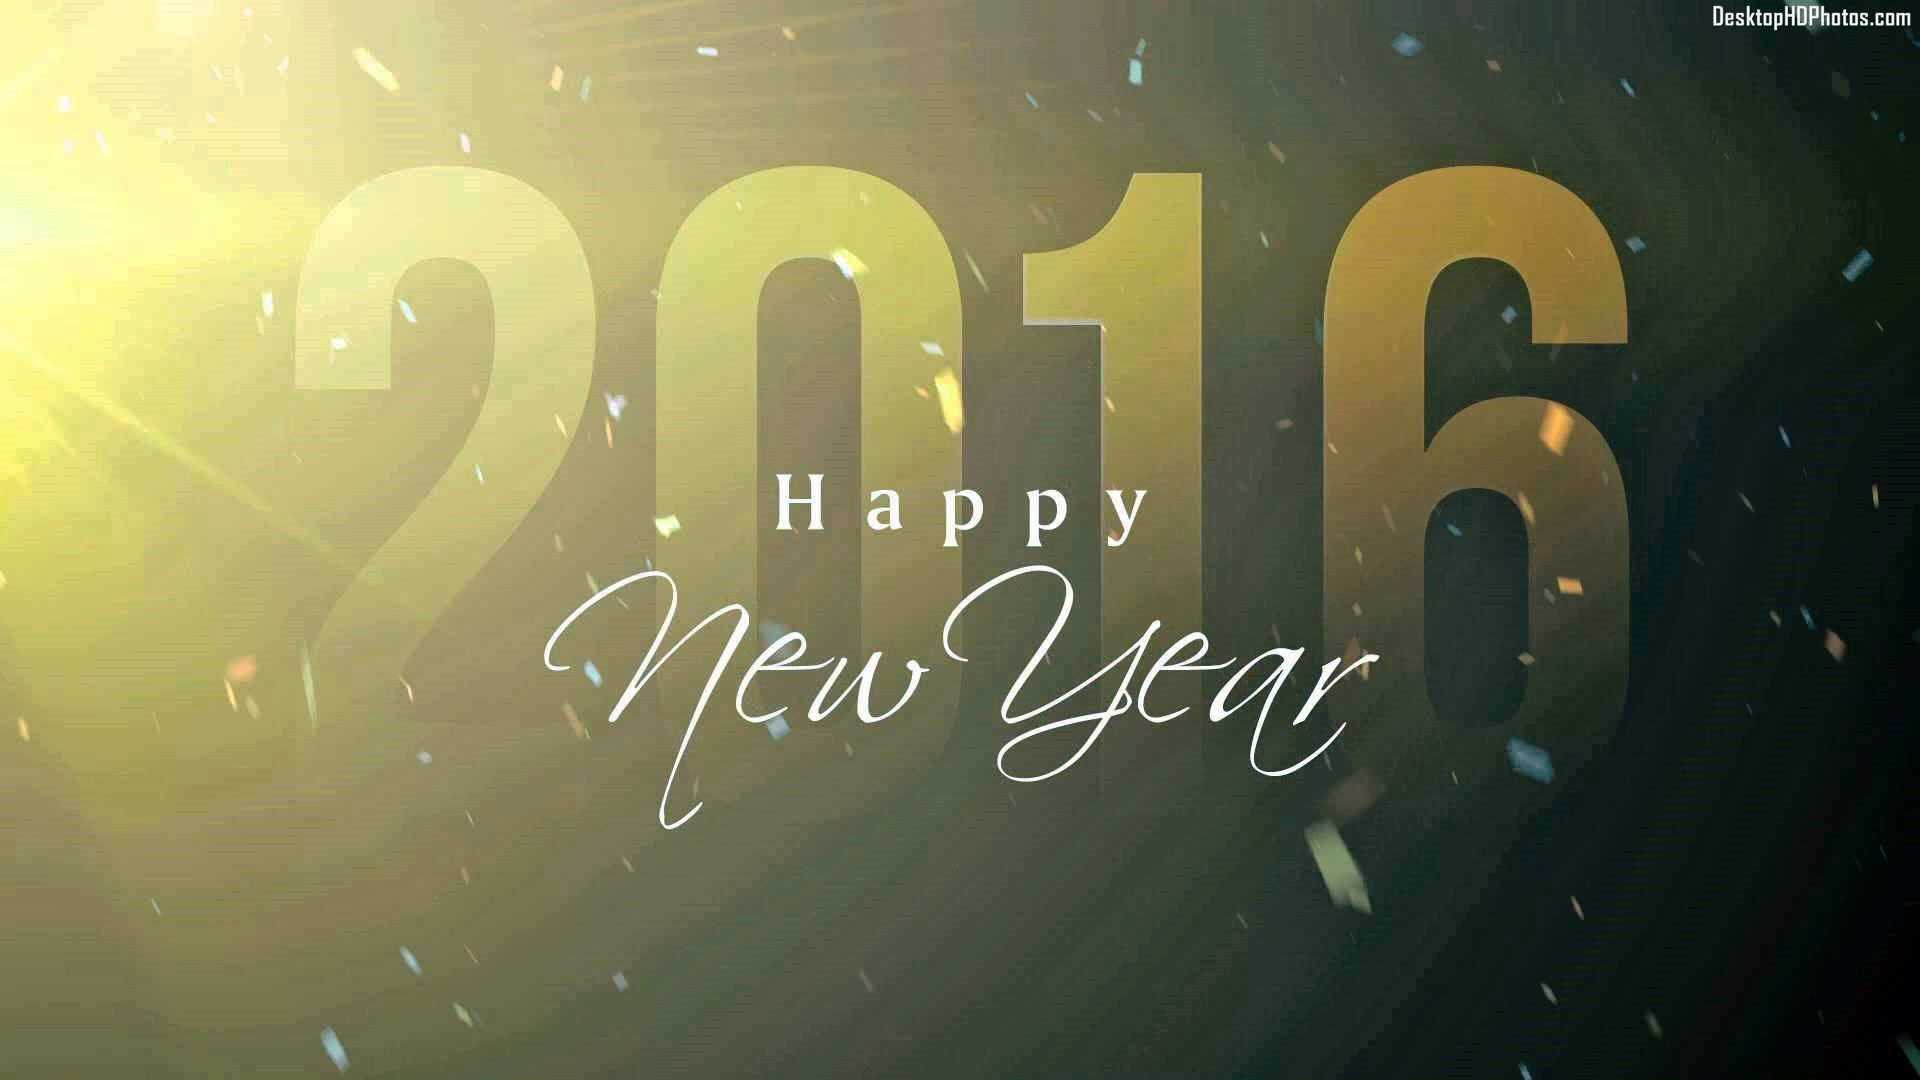 happy new year 2016 wallpaper